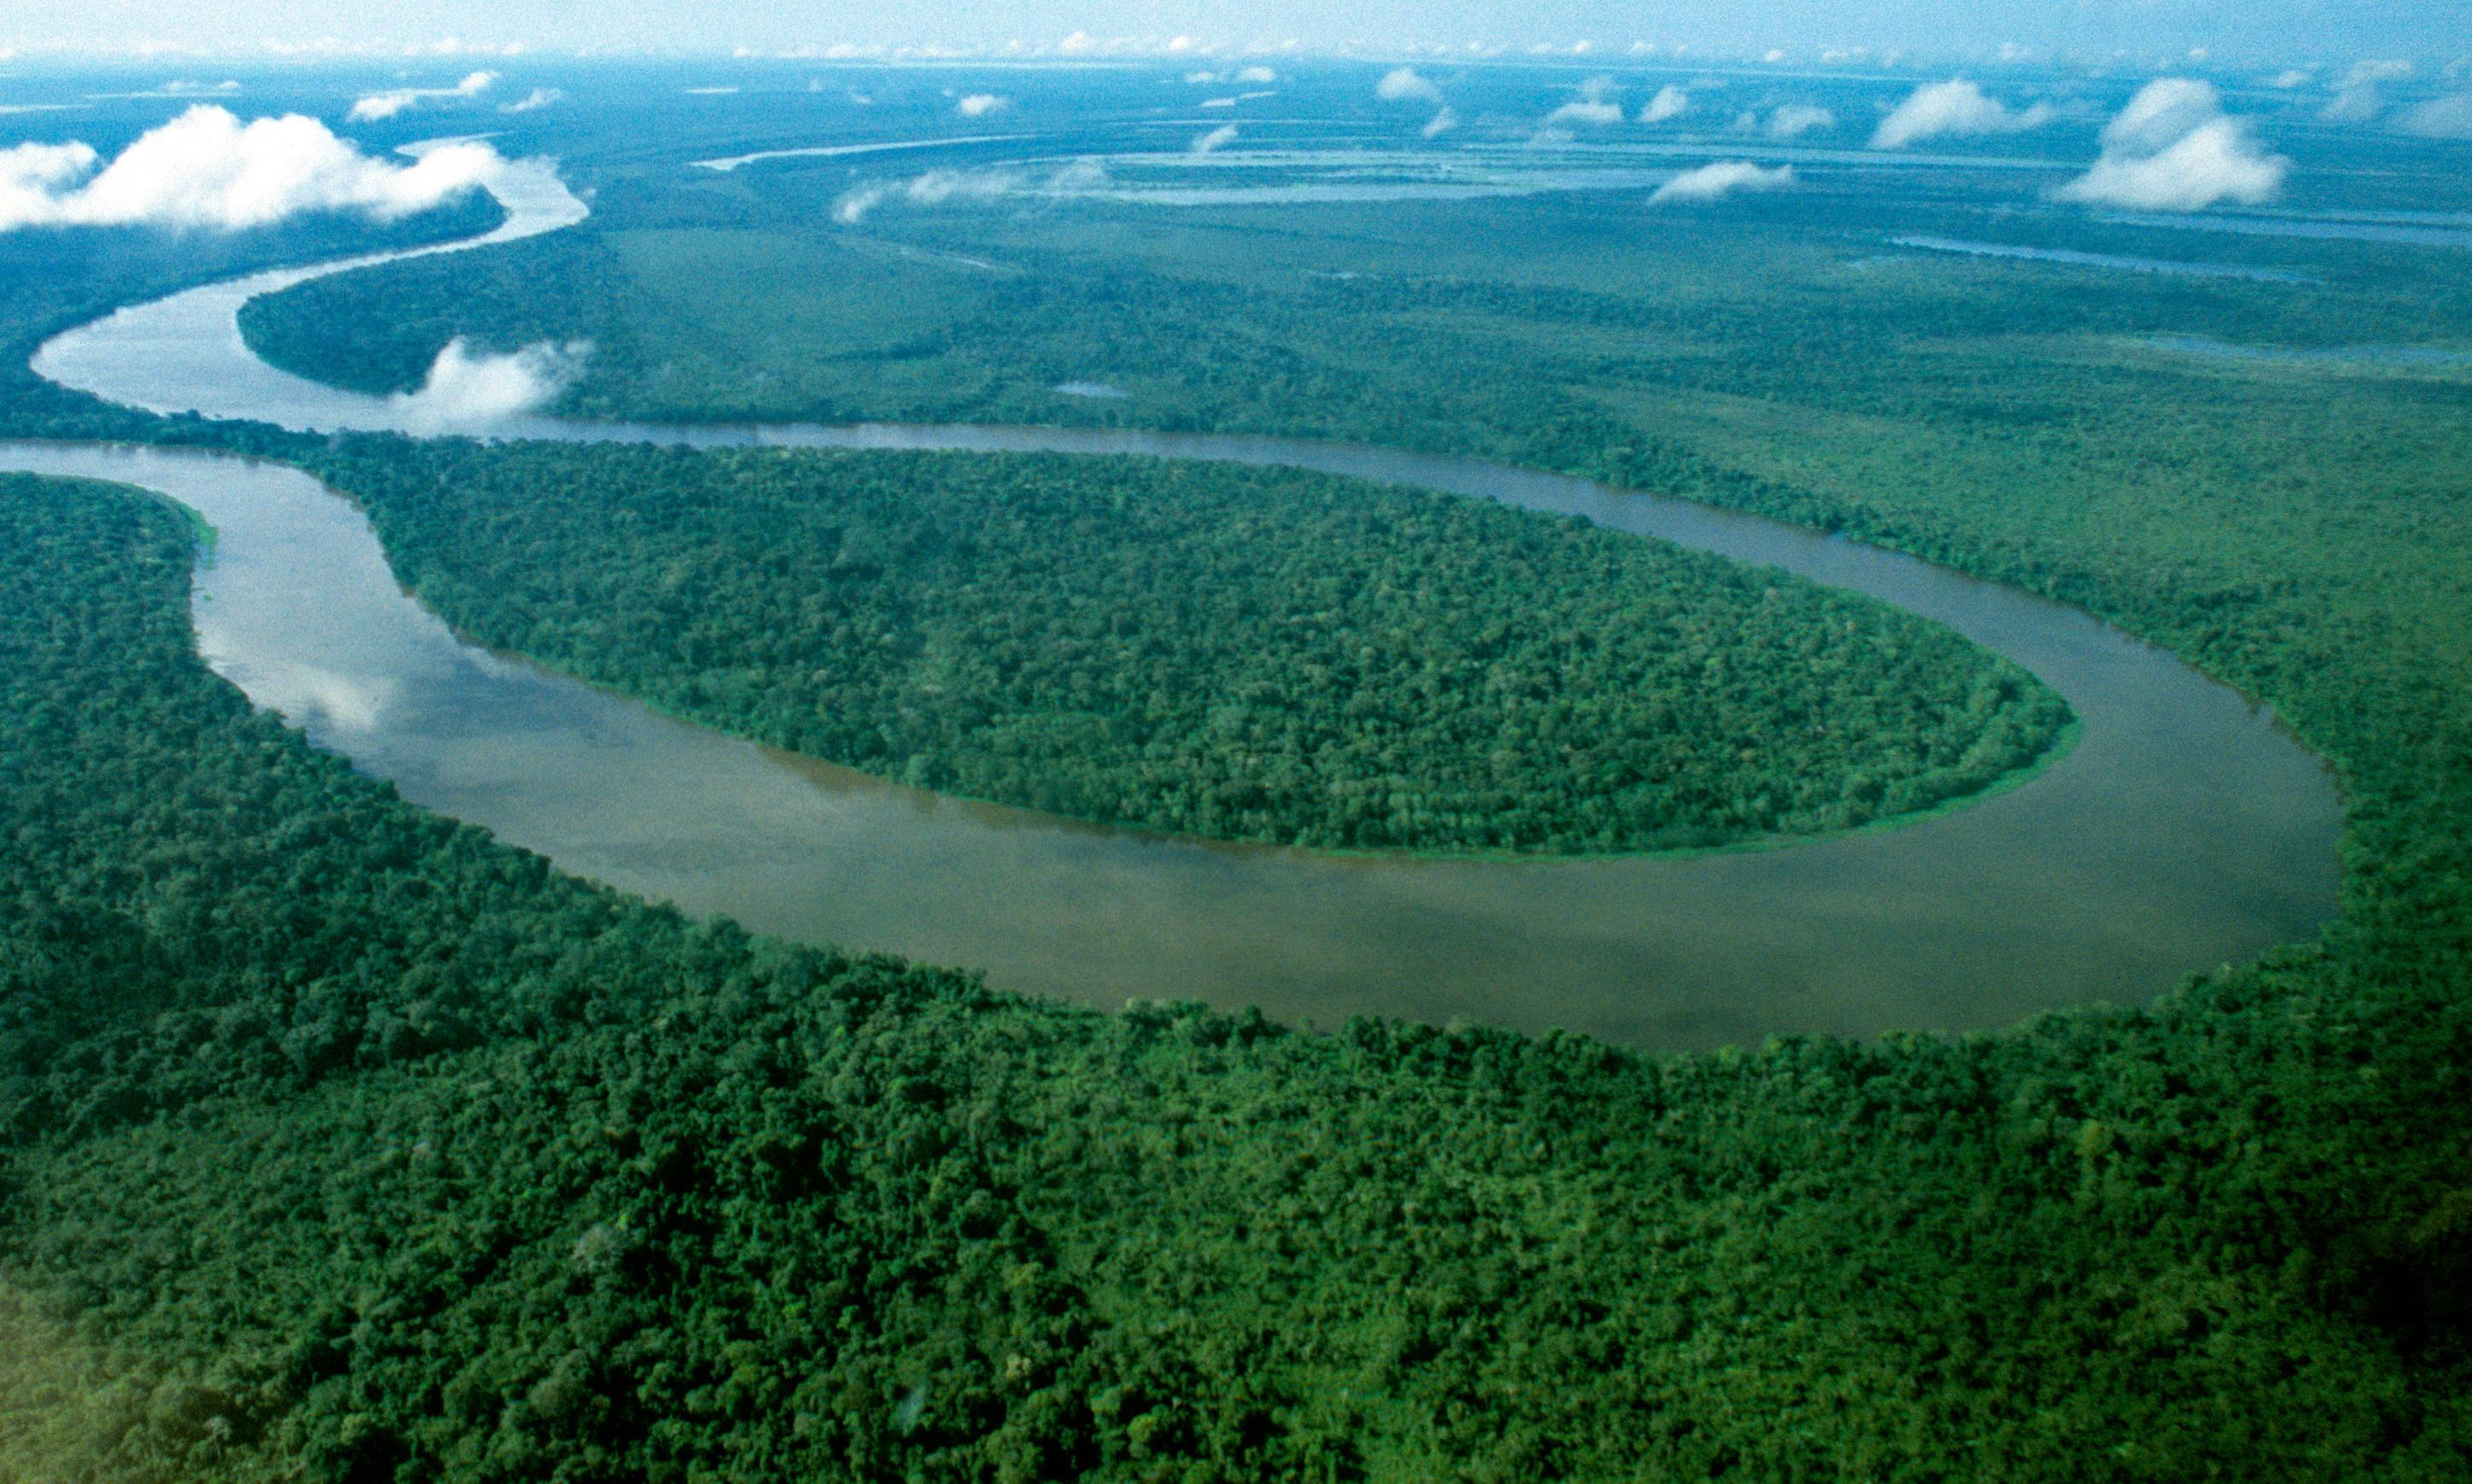 Shell boss says mass reforestation needed to limit temperature rises to 1.5C